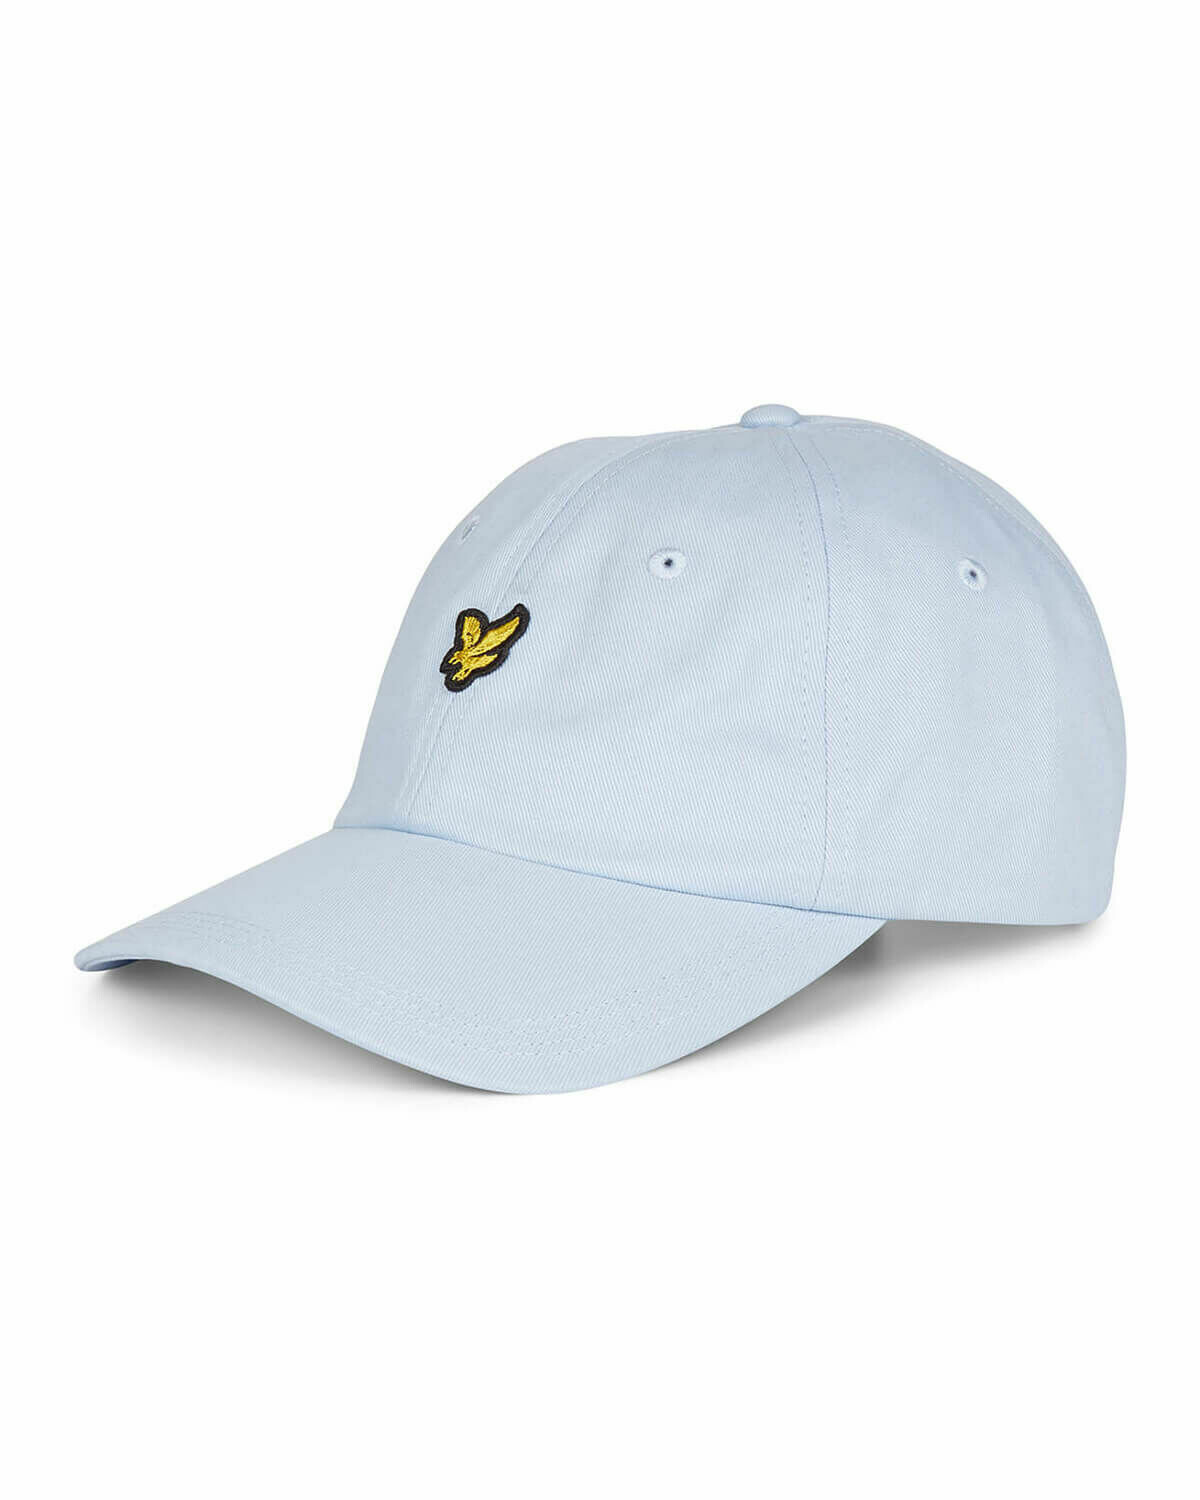 Lyle & Scott | Baseball Cap - Pool Blue